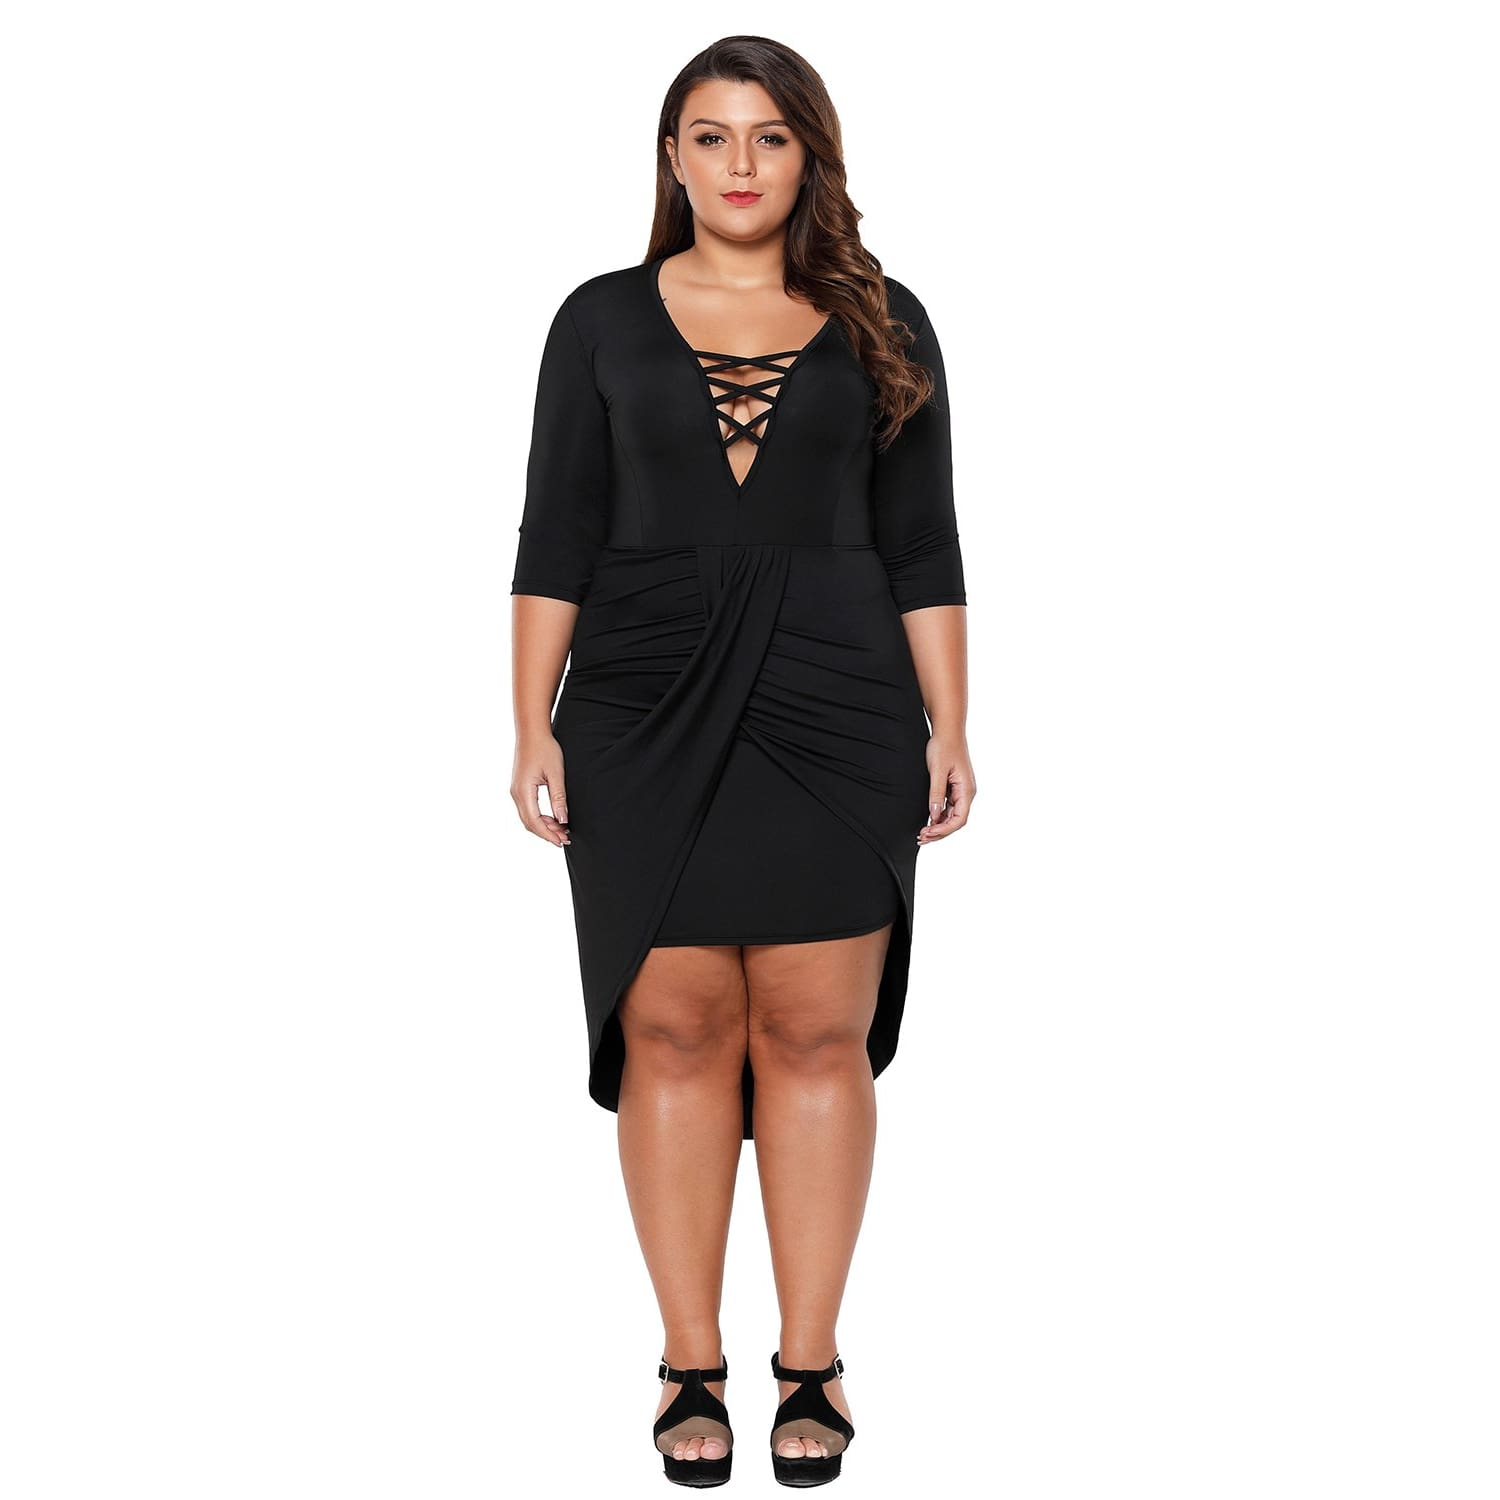 Black Plus Size Plunge Cross Strap Surplice Bodycon Dress - Best YOU by HTS